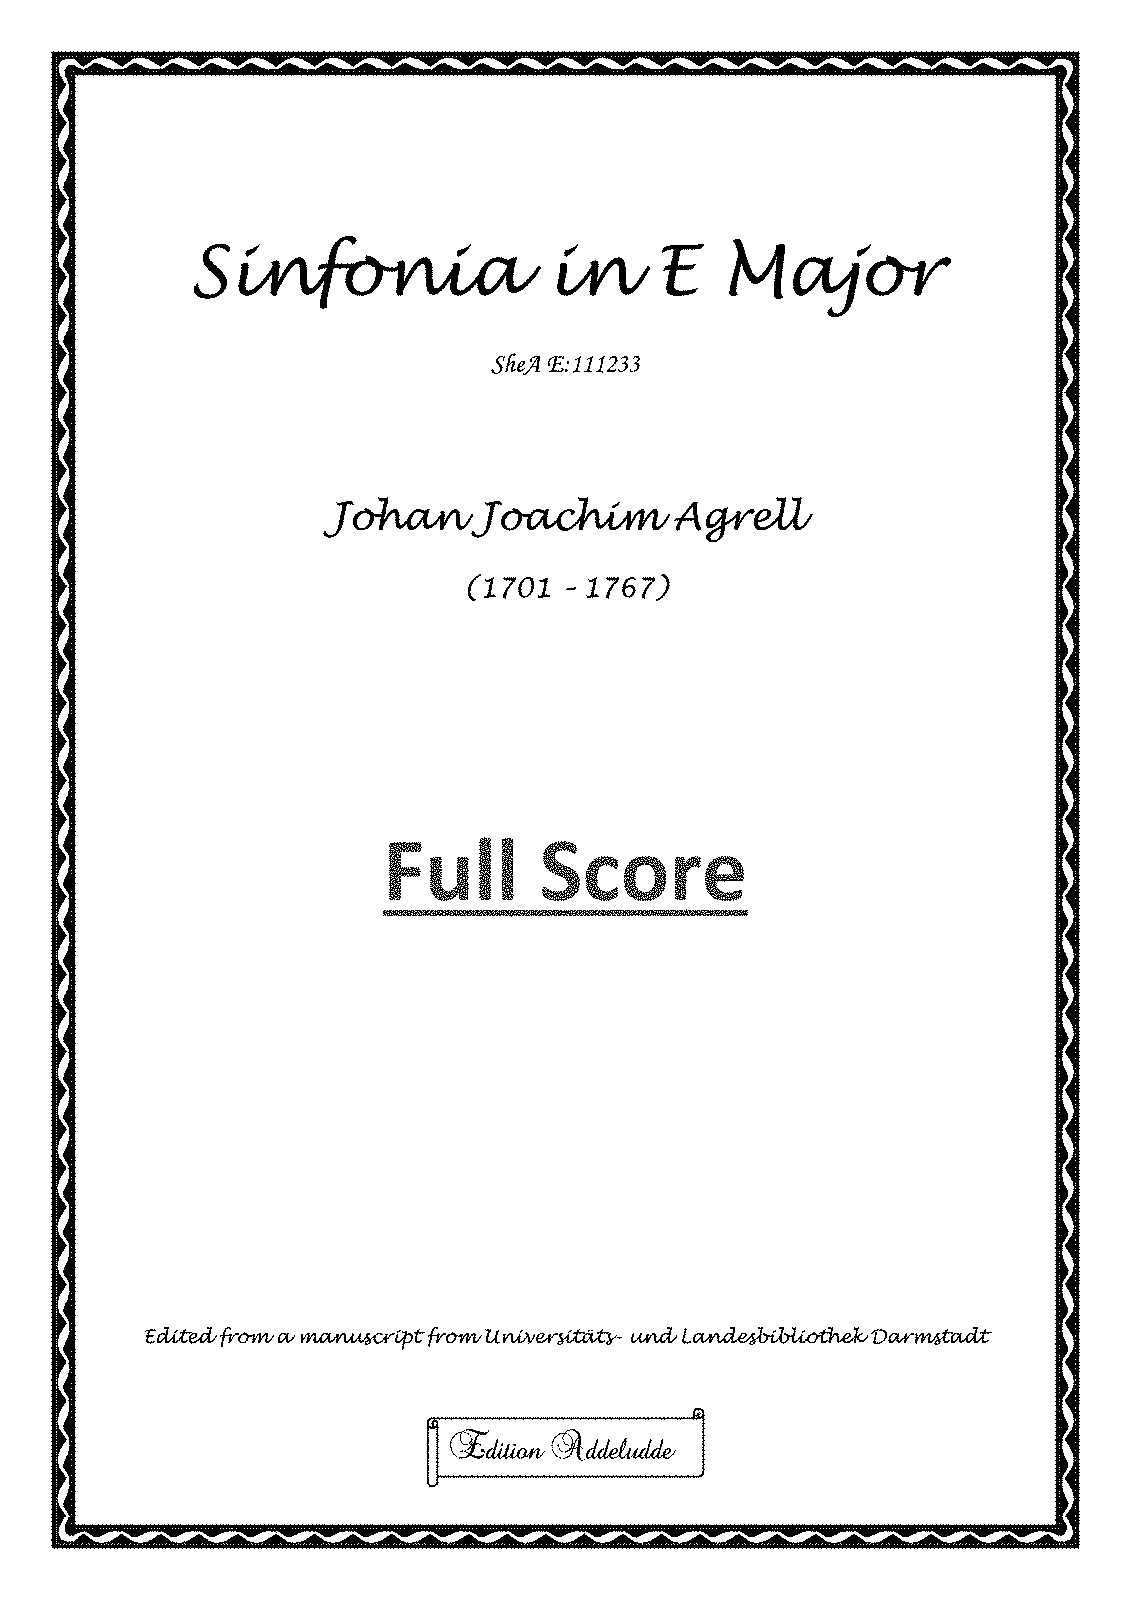 PMLP471361-Sinfonia in E Major Full Score.pdf